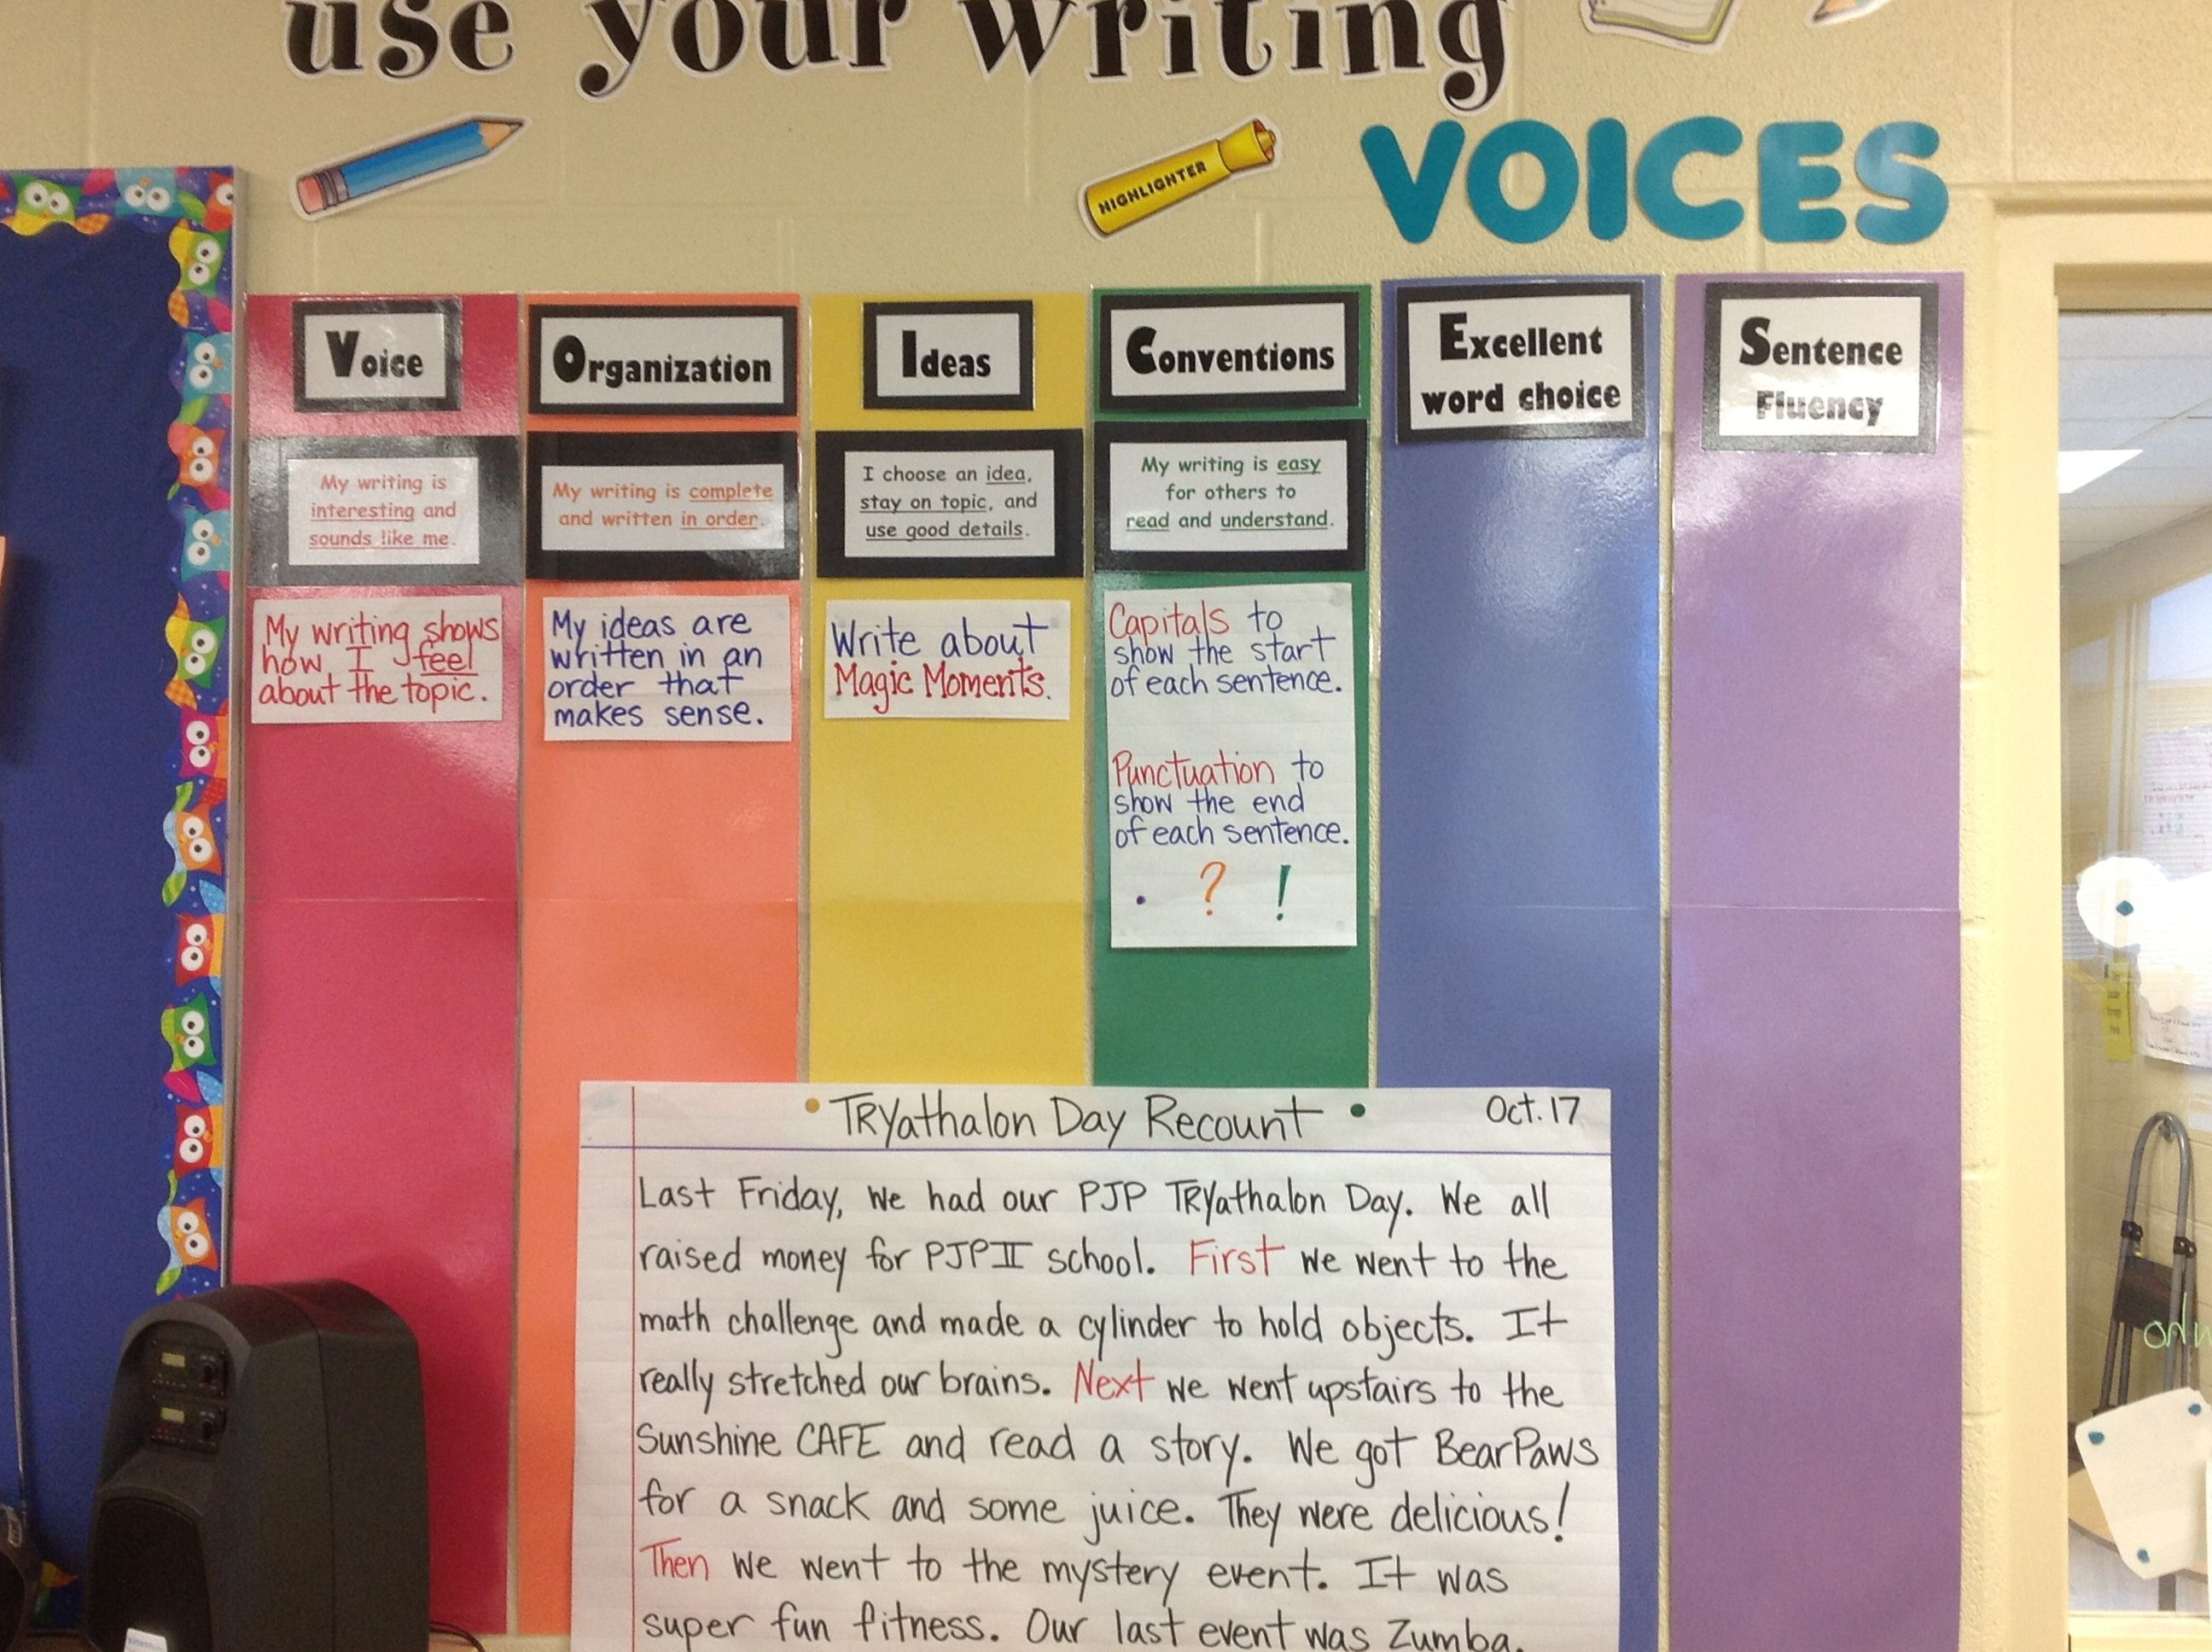 Writing Voices Board Love How This Ties Together Write